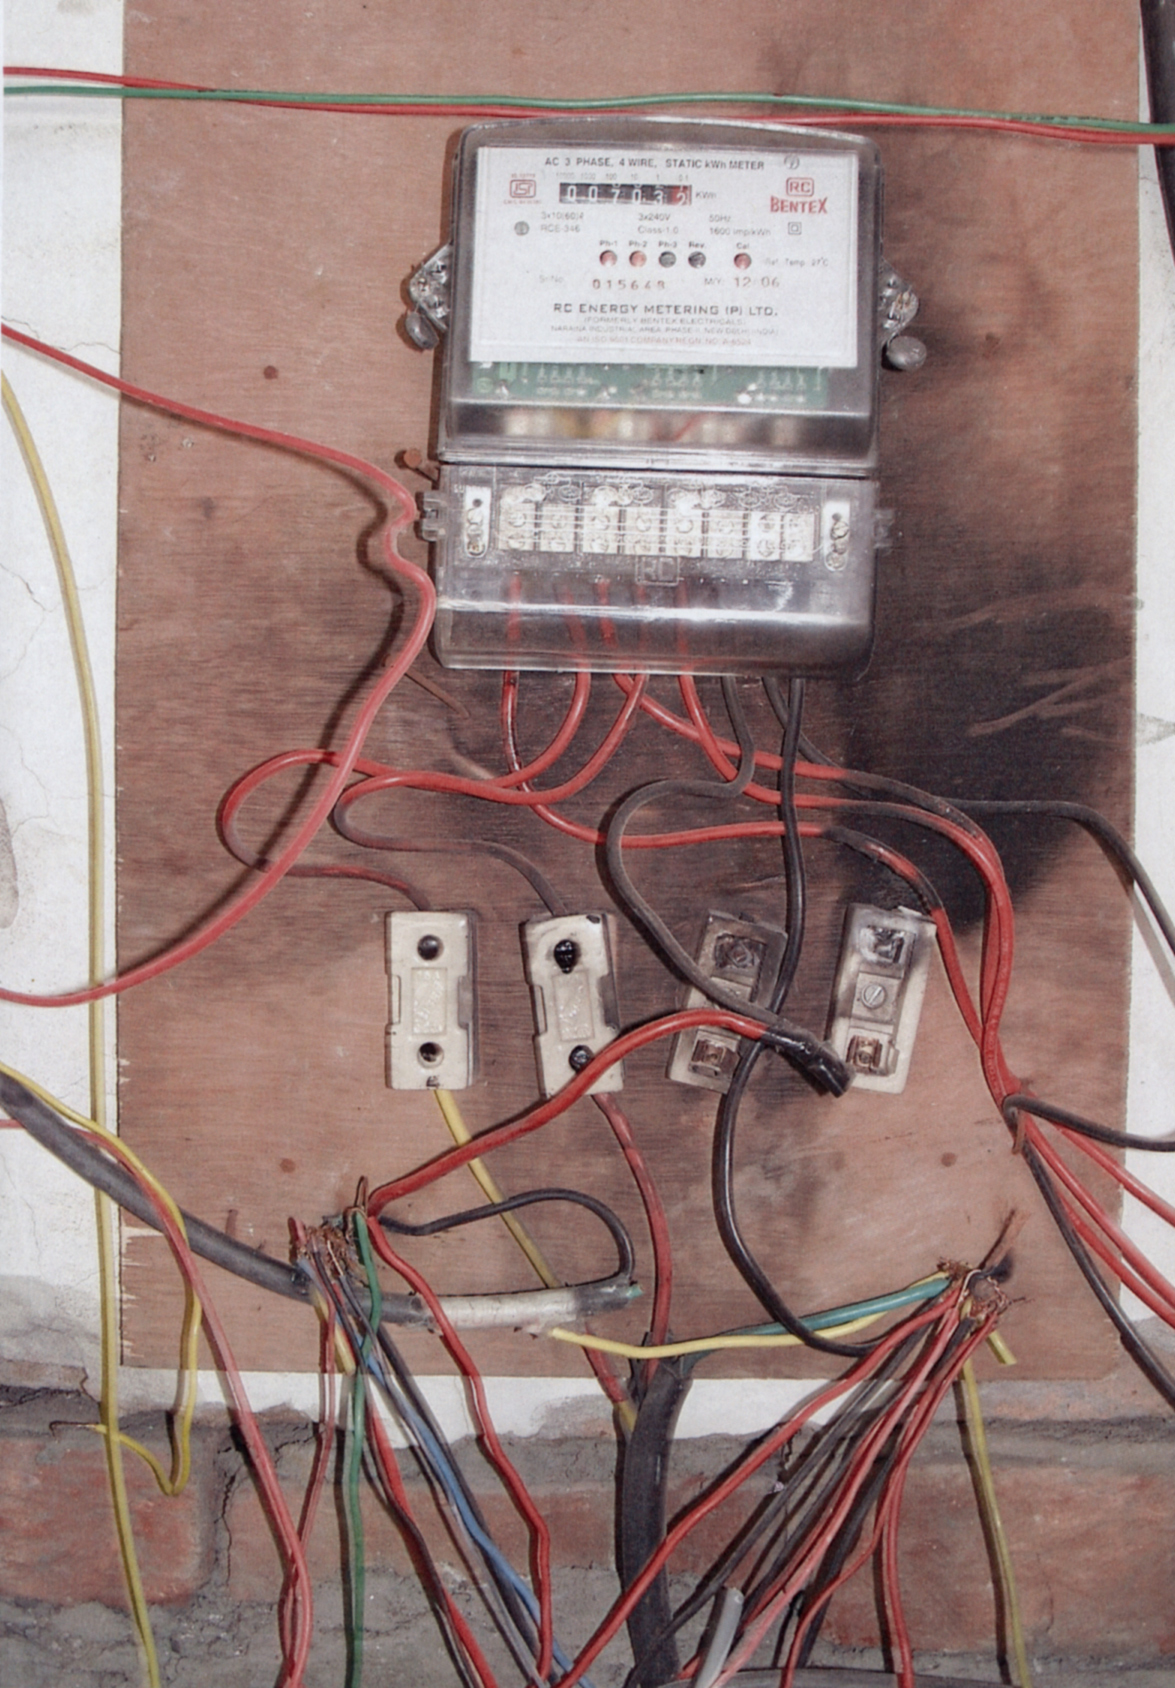 world s worst wiring the top three most shocking electrical rh eandt theiet org Vintage Electrical Wiring Faulty Wiring